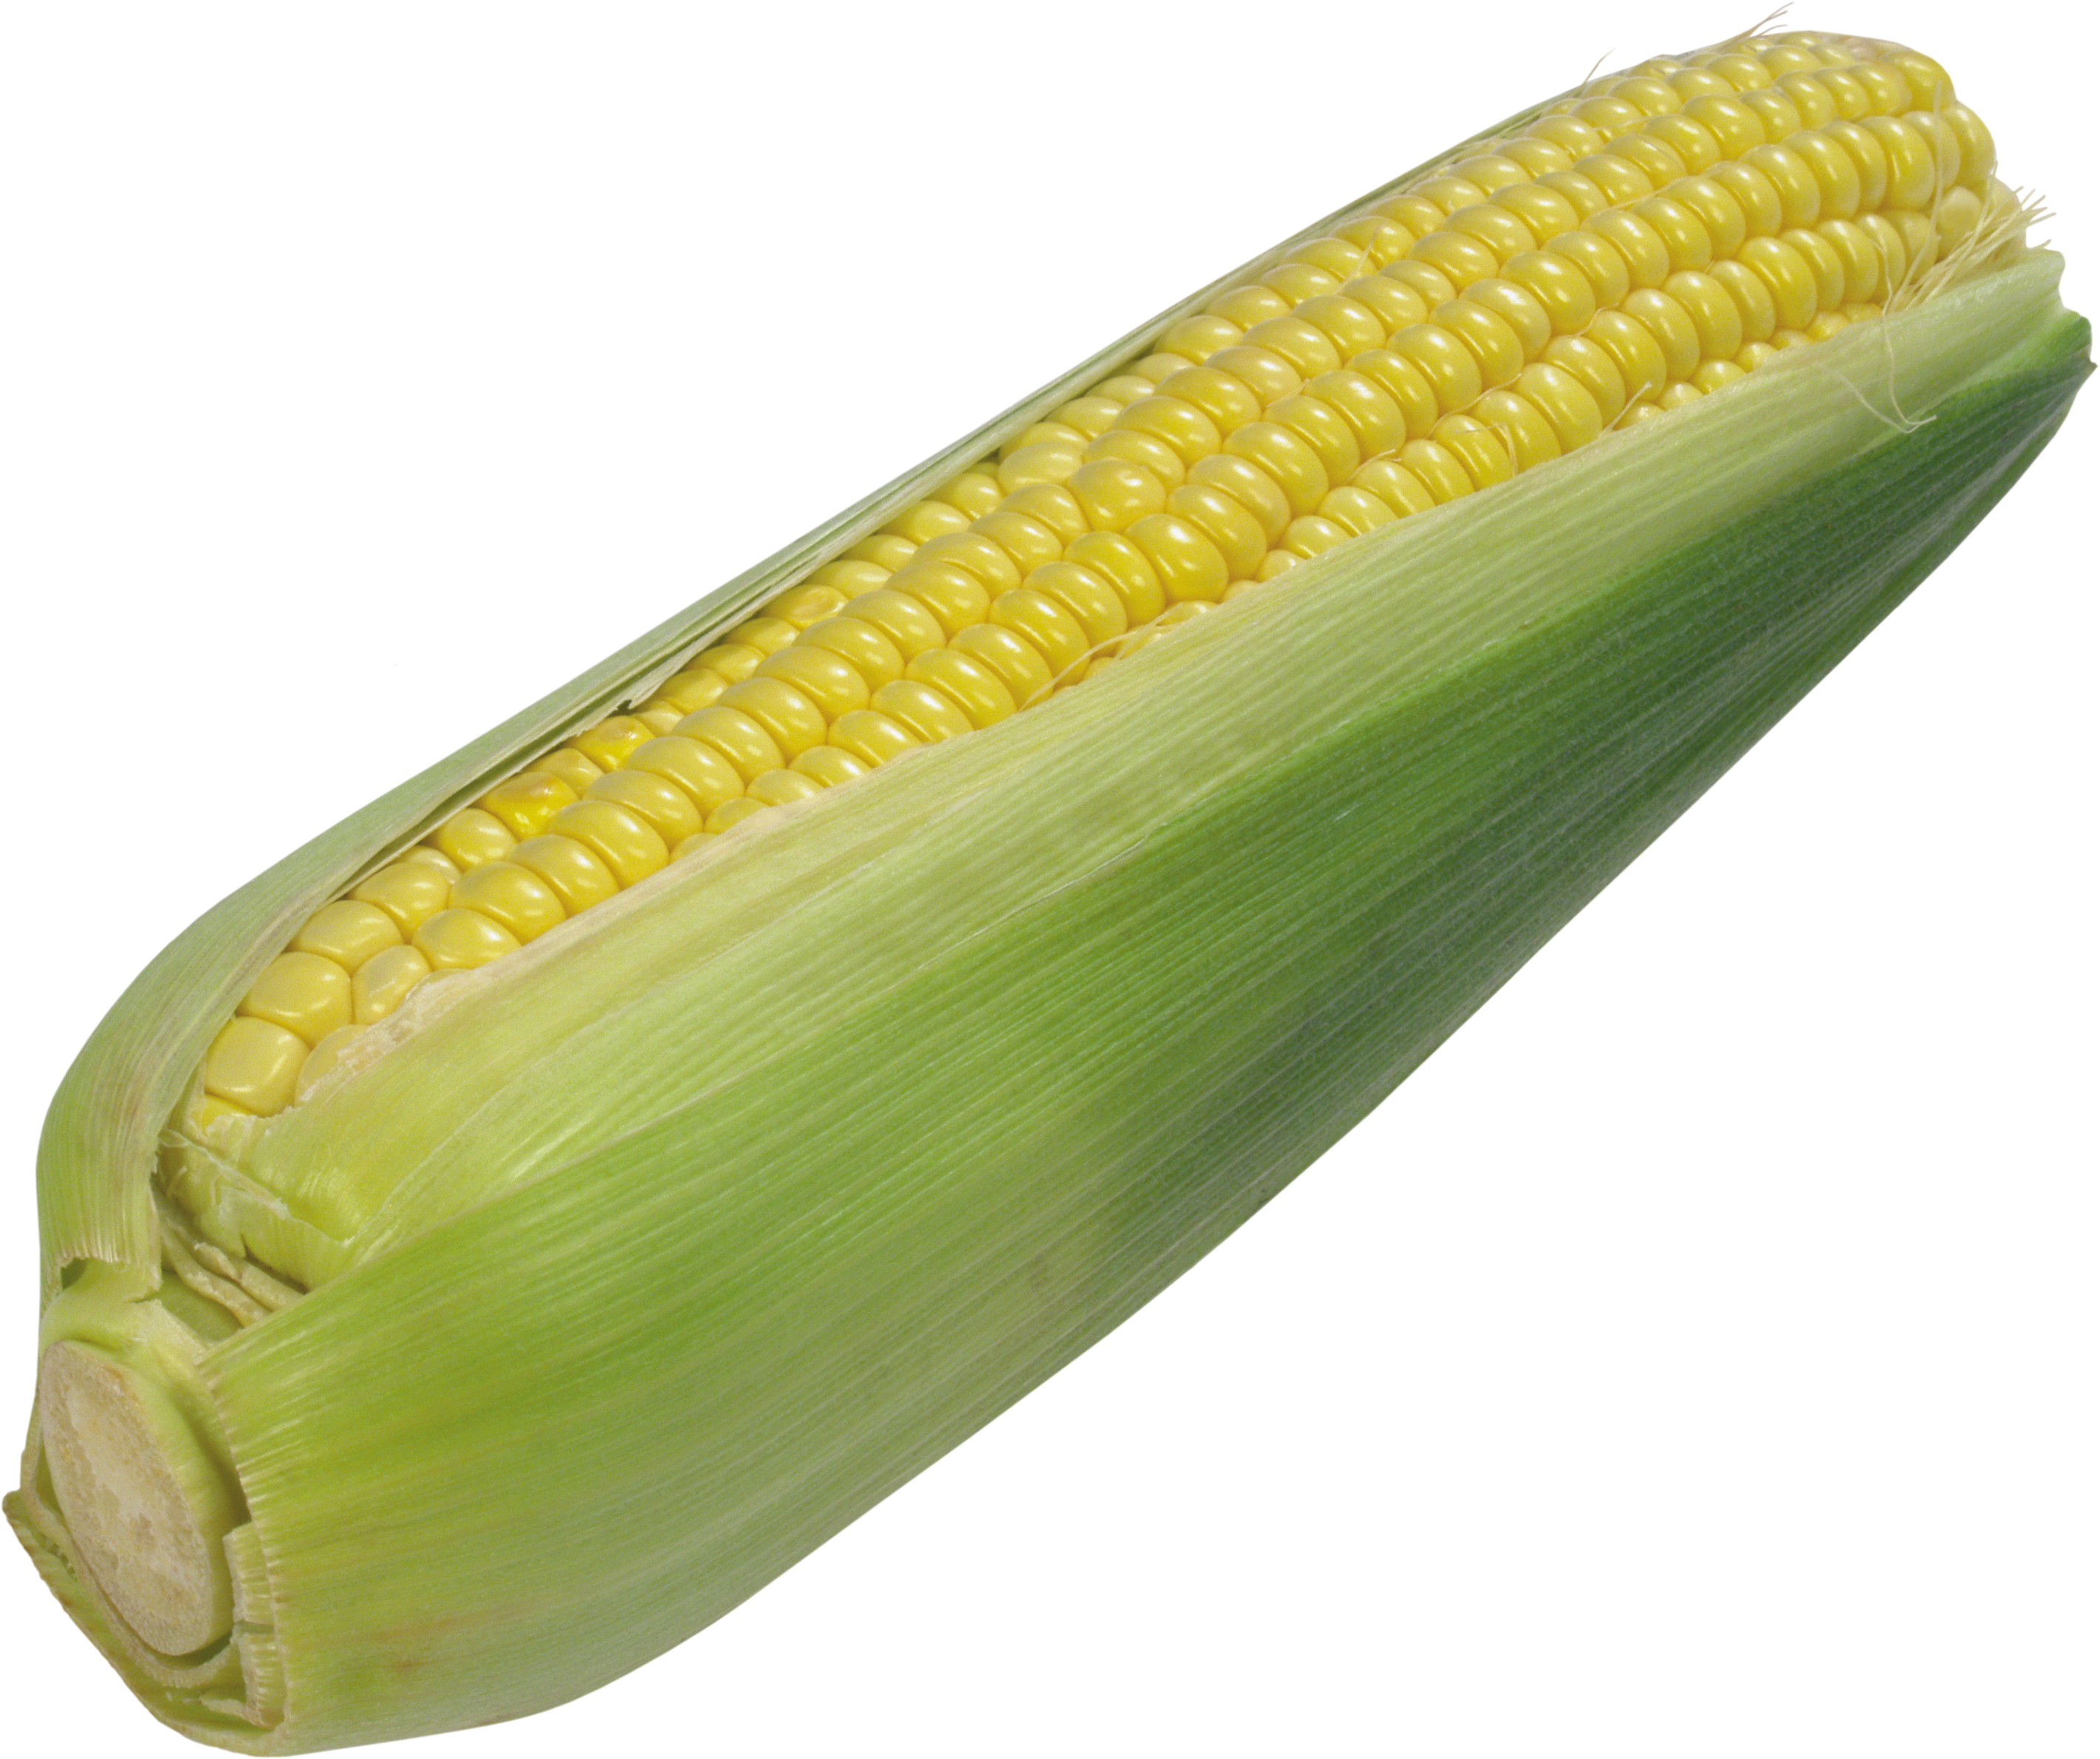 Corn png cooked. Image purepng free transparent